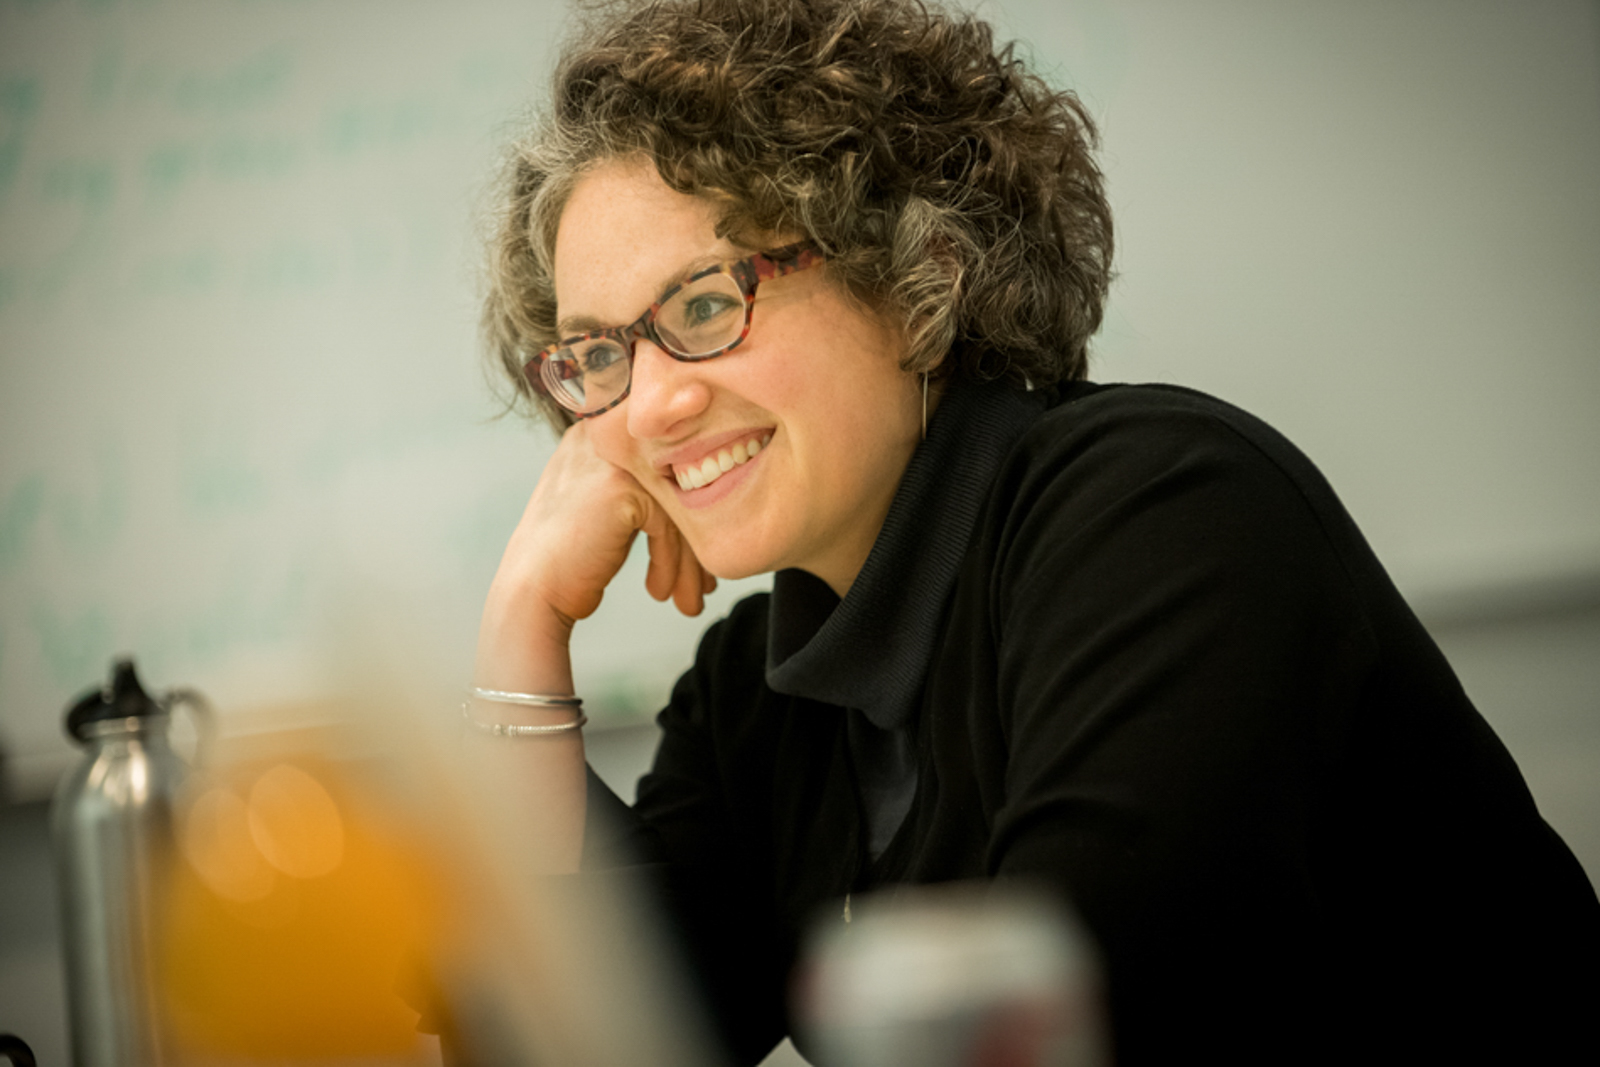 Candid of woman smiling during a meeting